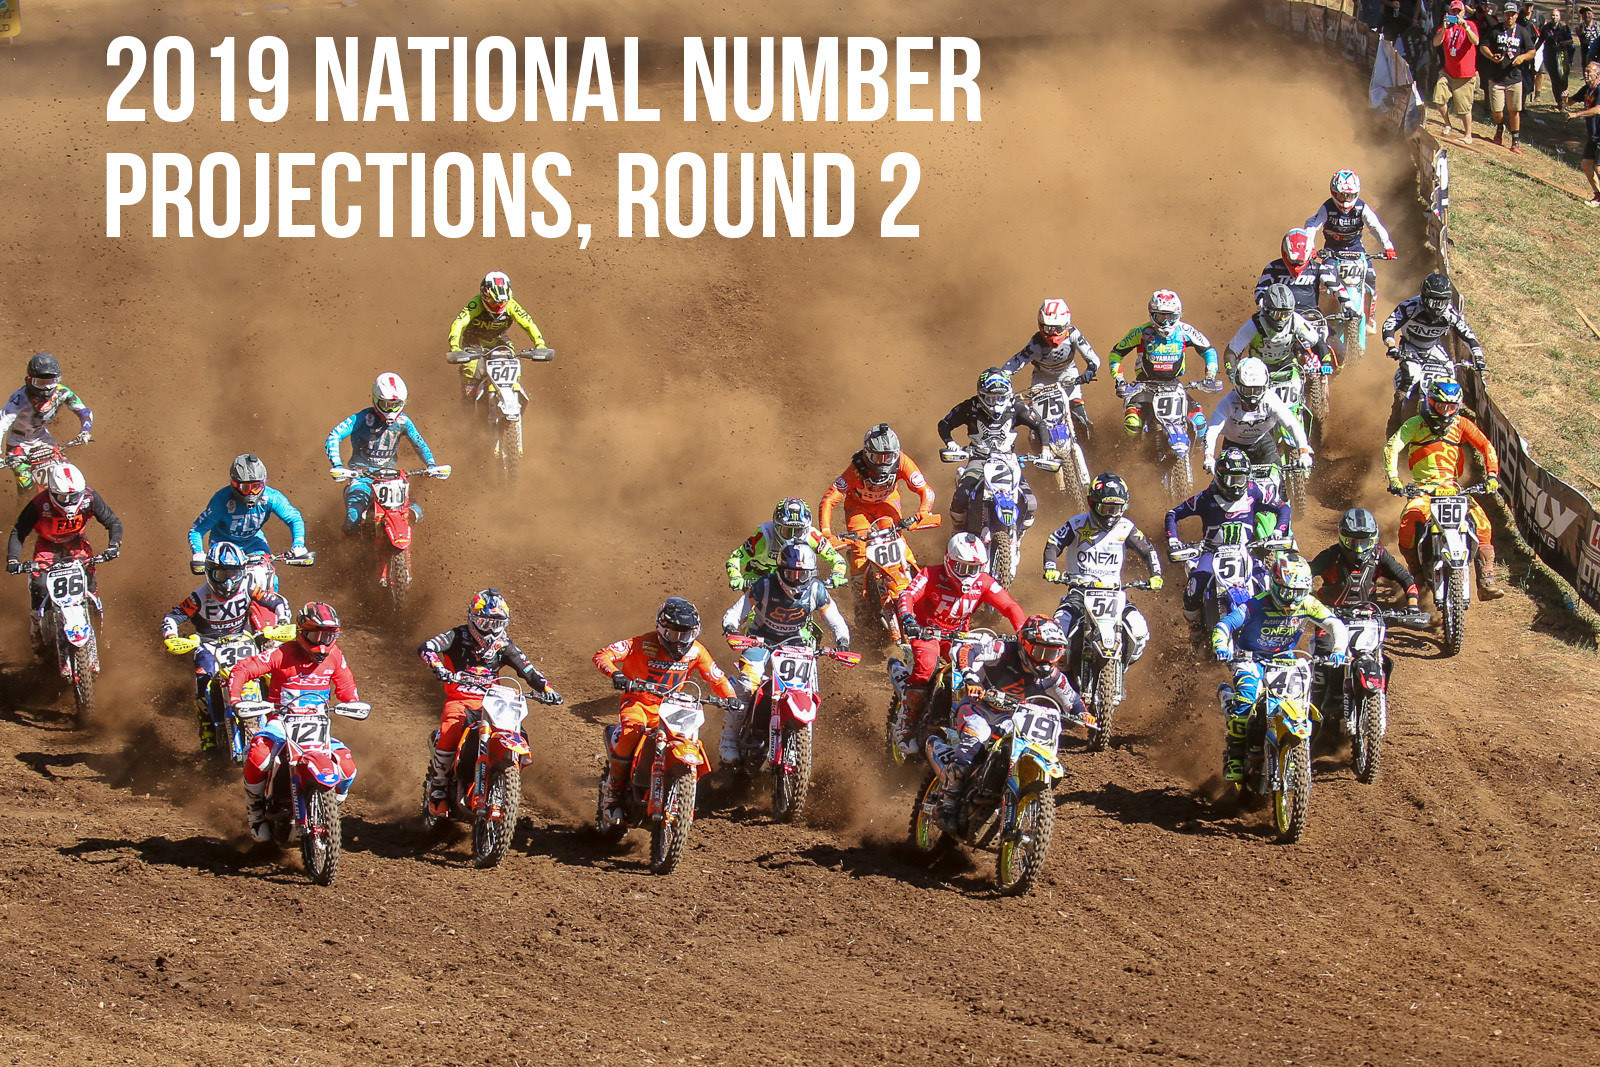 2019 ama national number projections round 2